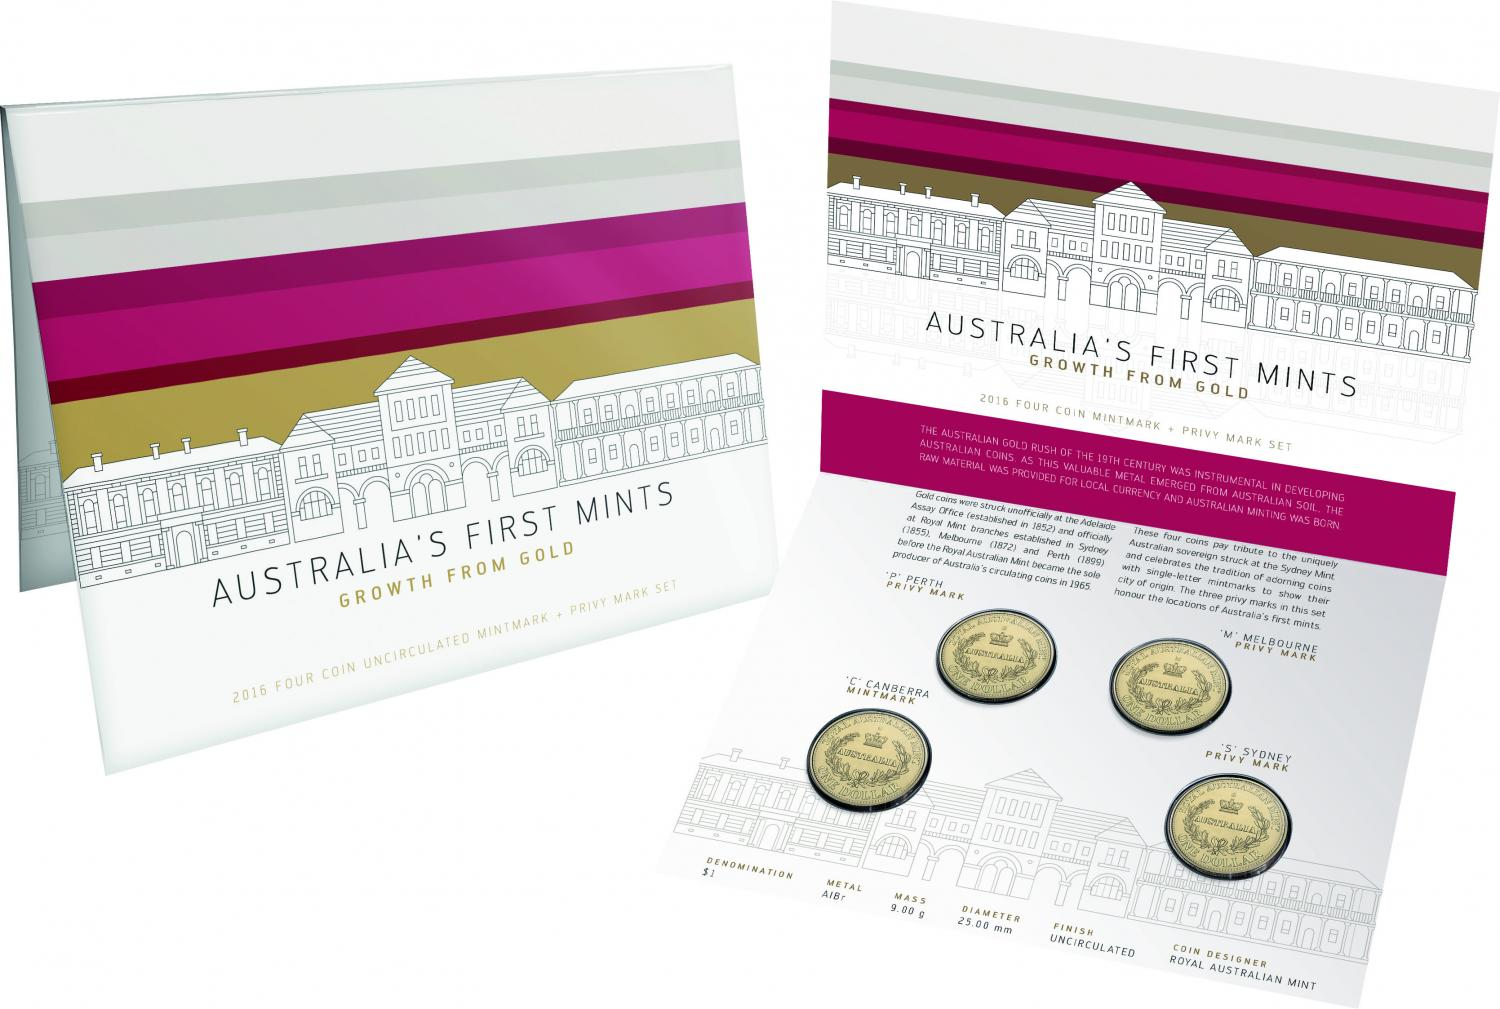 Thumbnail for 2016 Australia's First Mints 4 Coin Privy Mark Set CPMS